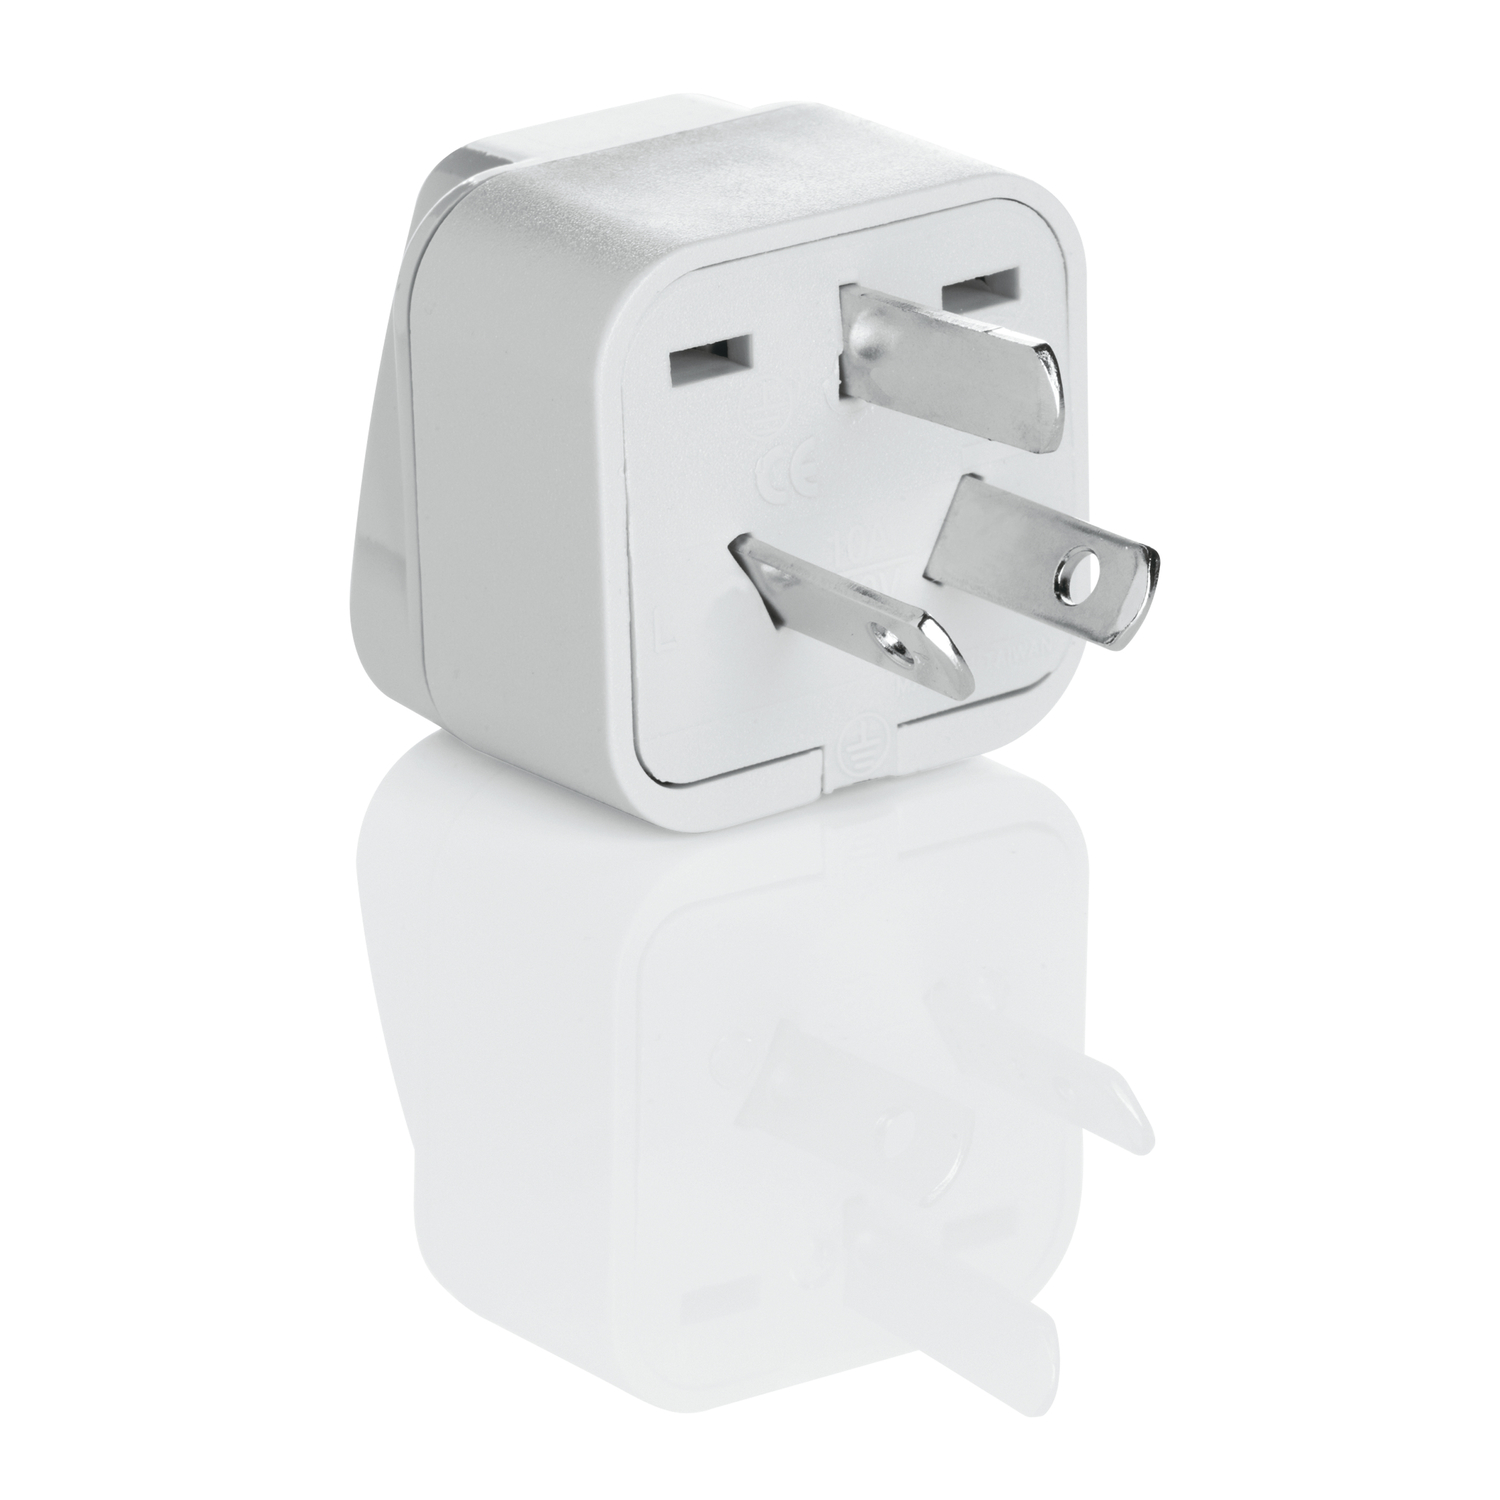 Travel Smart  Type I  Grounded Adapter Plug  For Worldwide